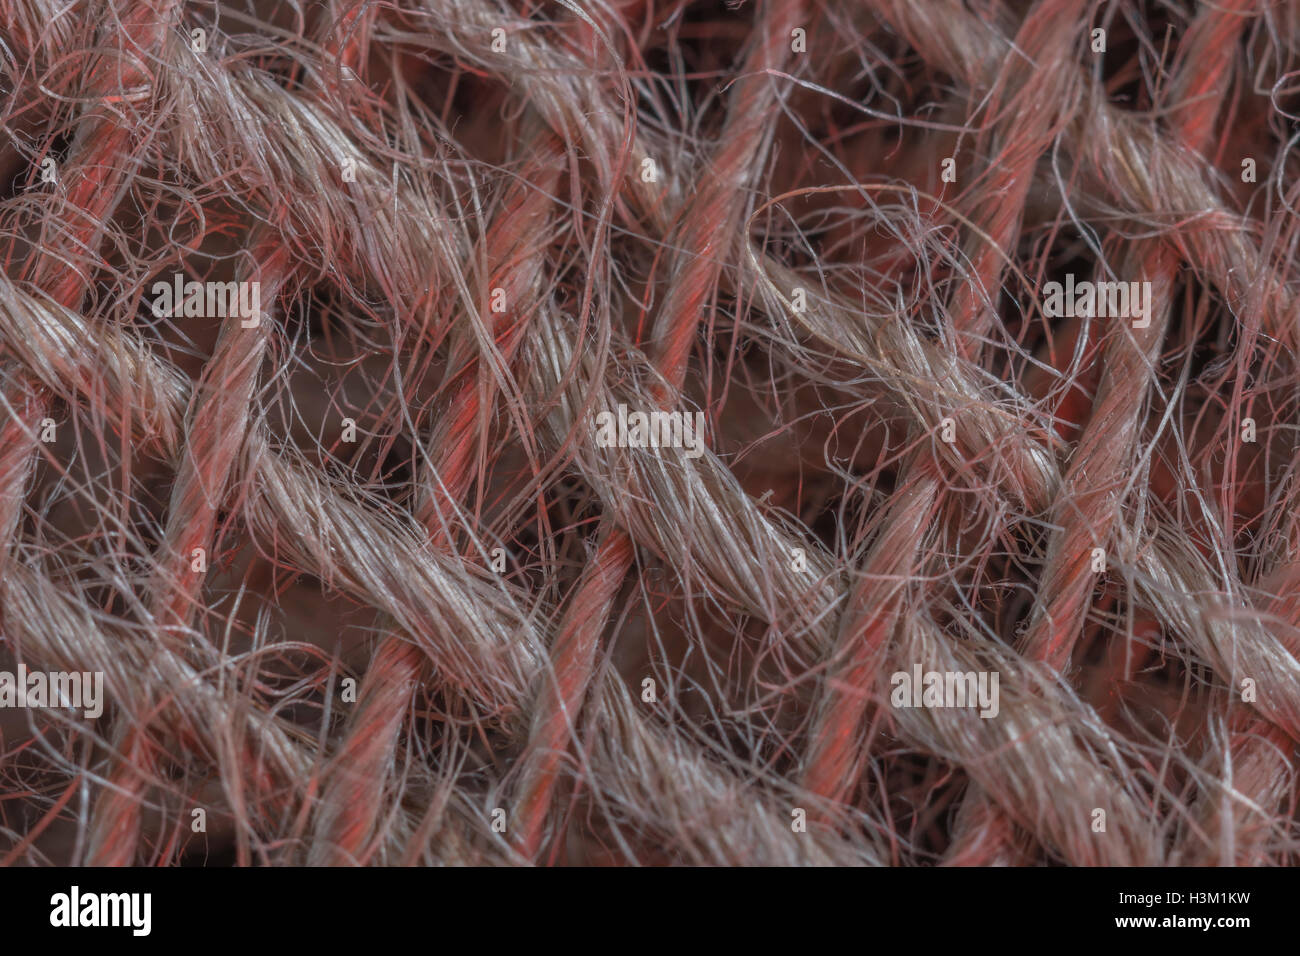 Macro-photo of natural fibre, jute burlap sacking material showing detail of the fine threads. - Stock Image